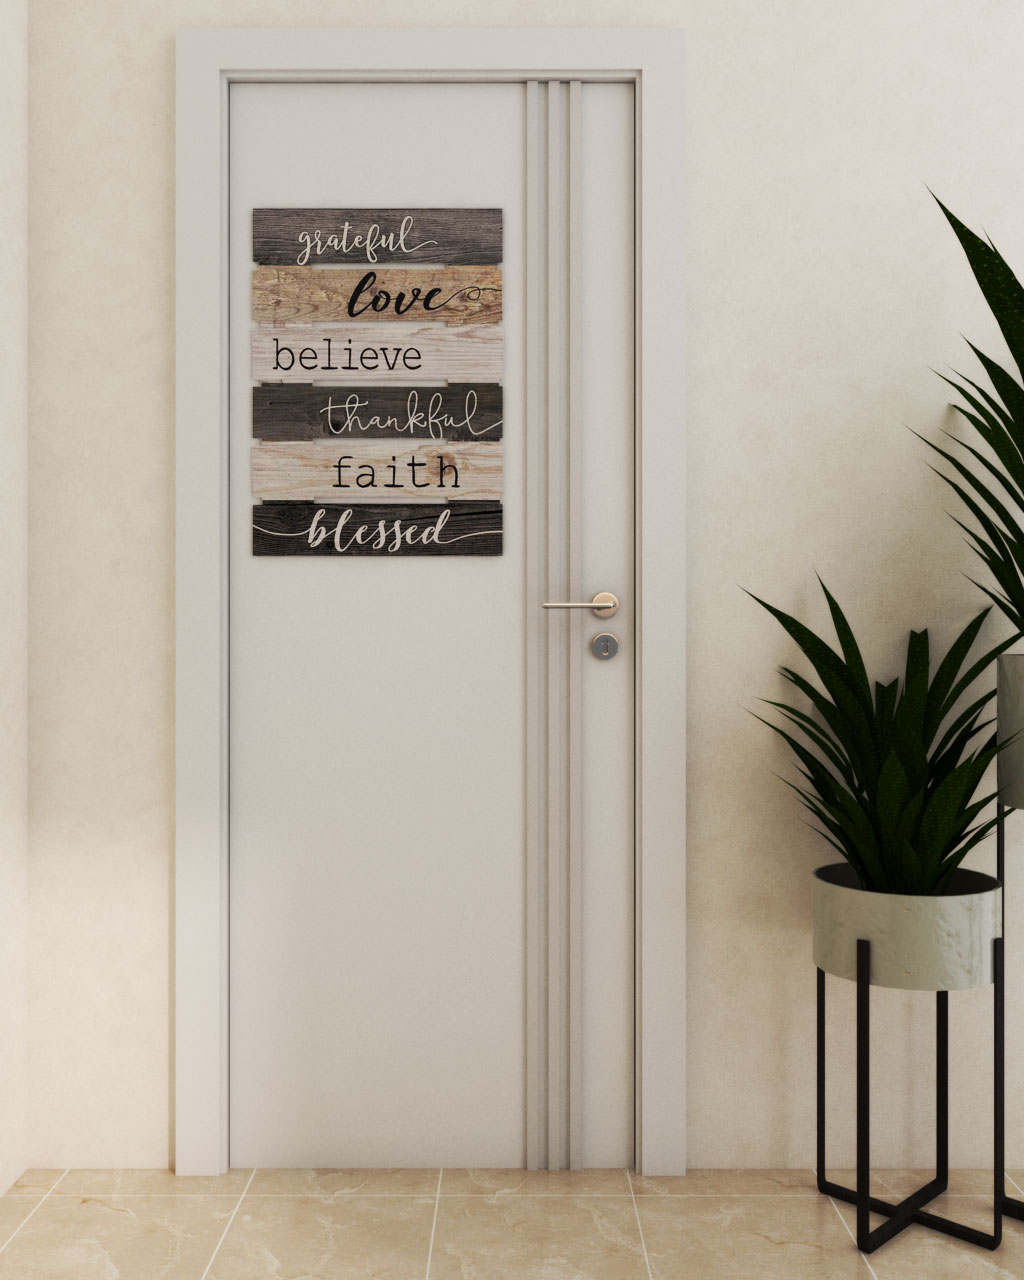 Creative Bedroom Door Design using Wall Art